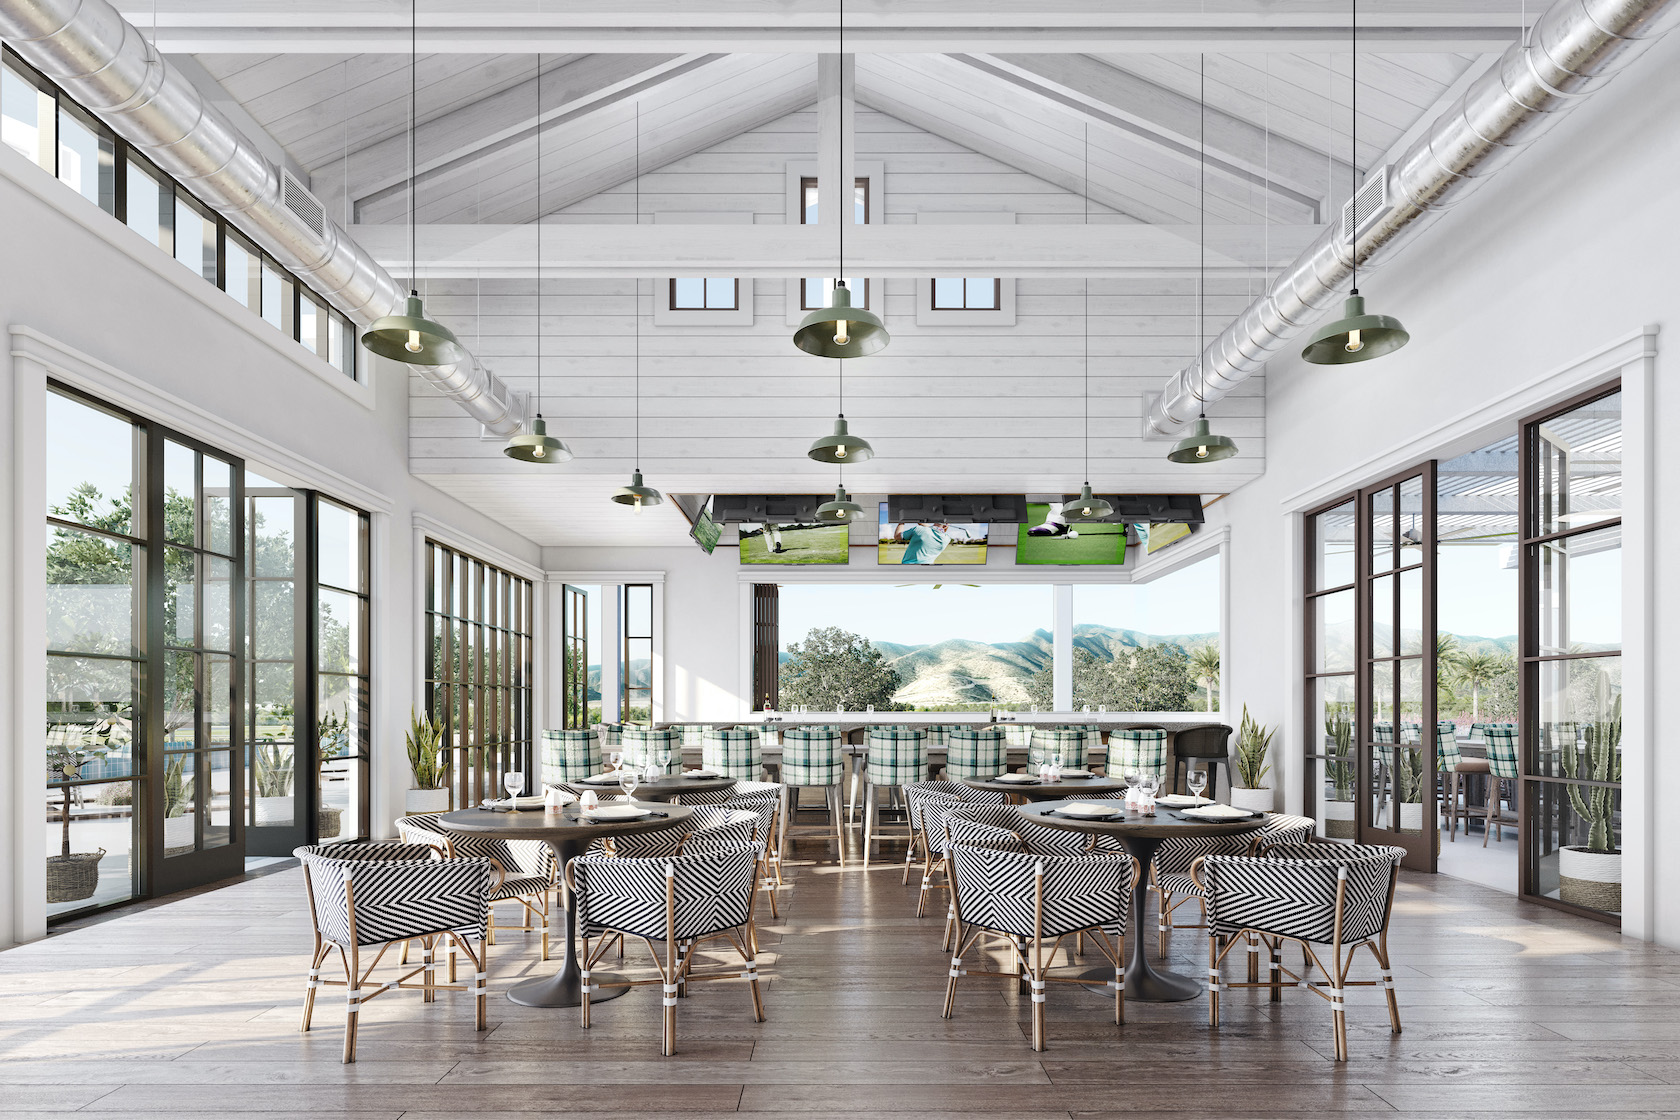 Sterling Grove Restaurant featuring high ceilings, tables and open windows